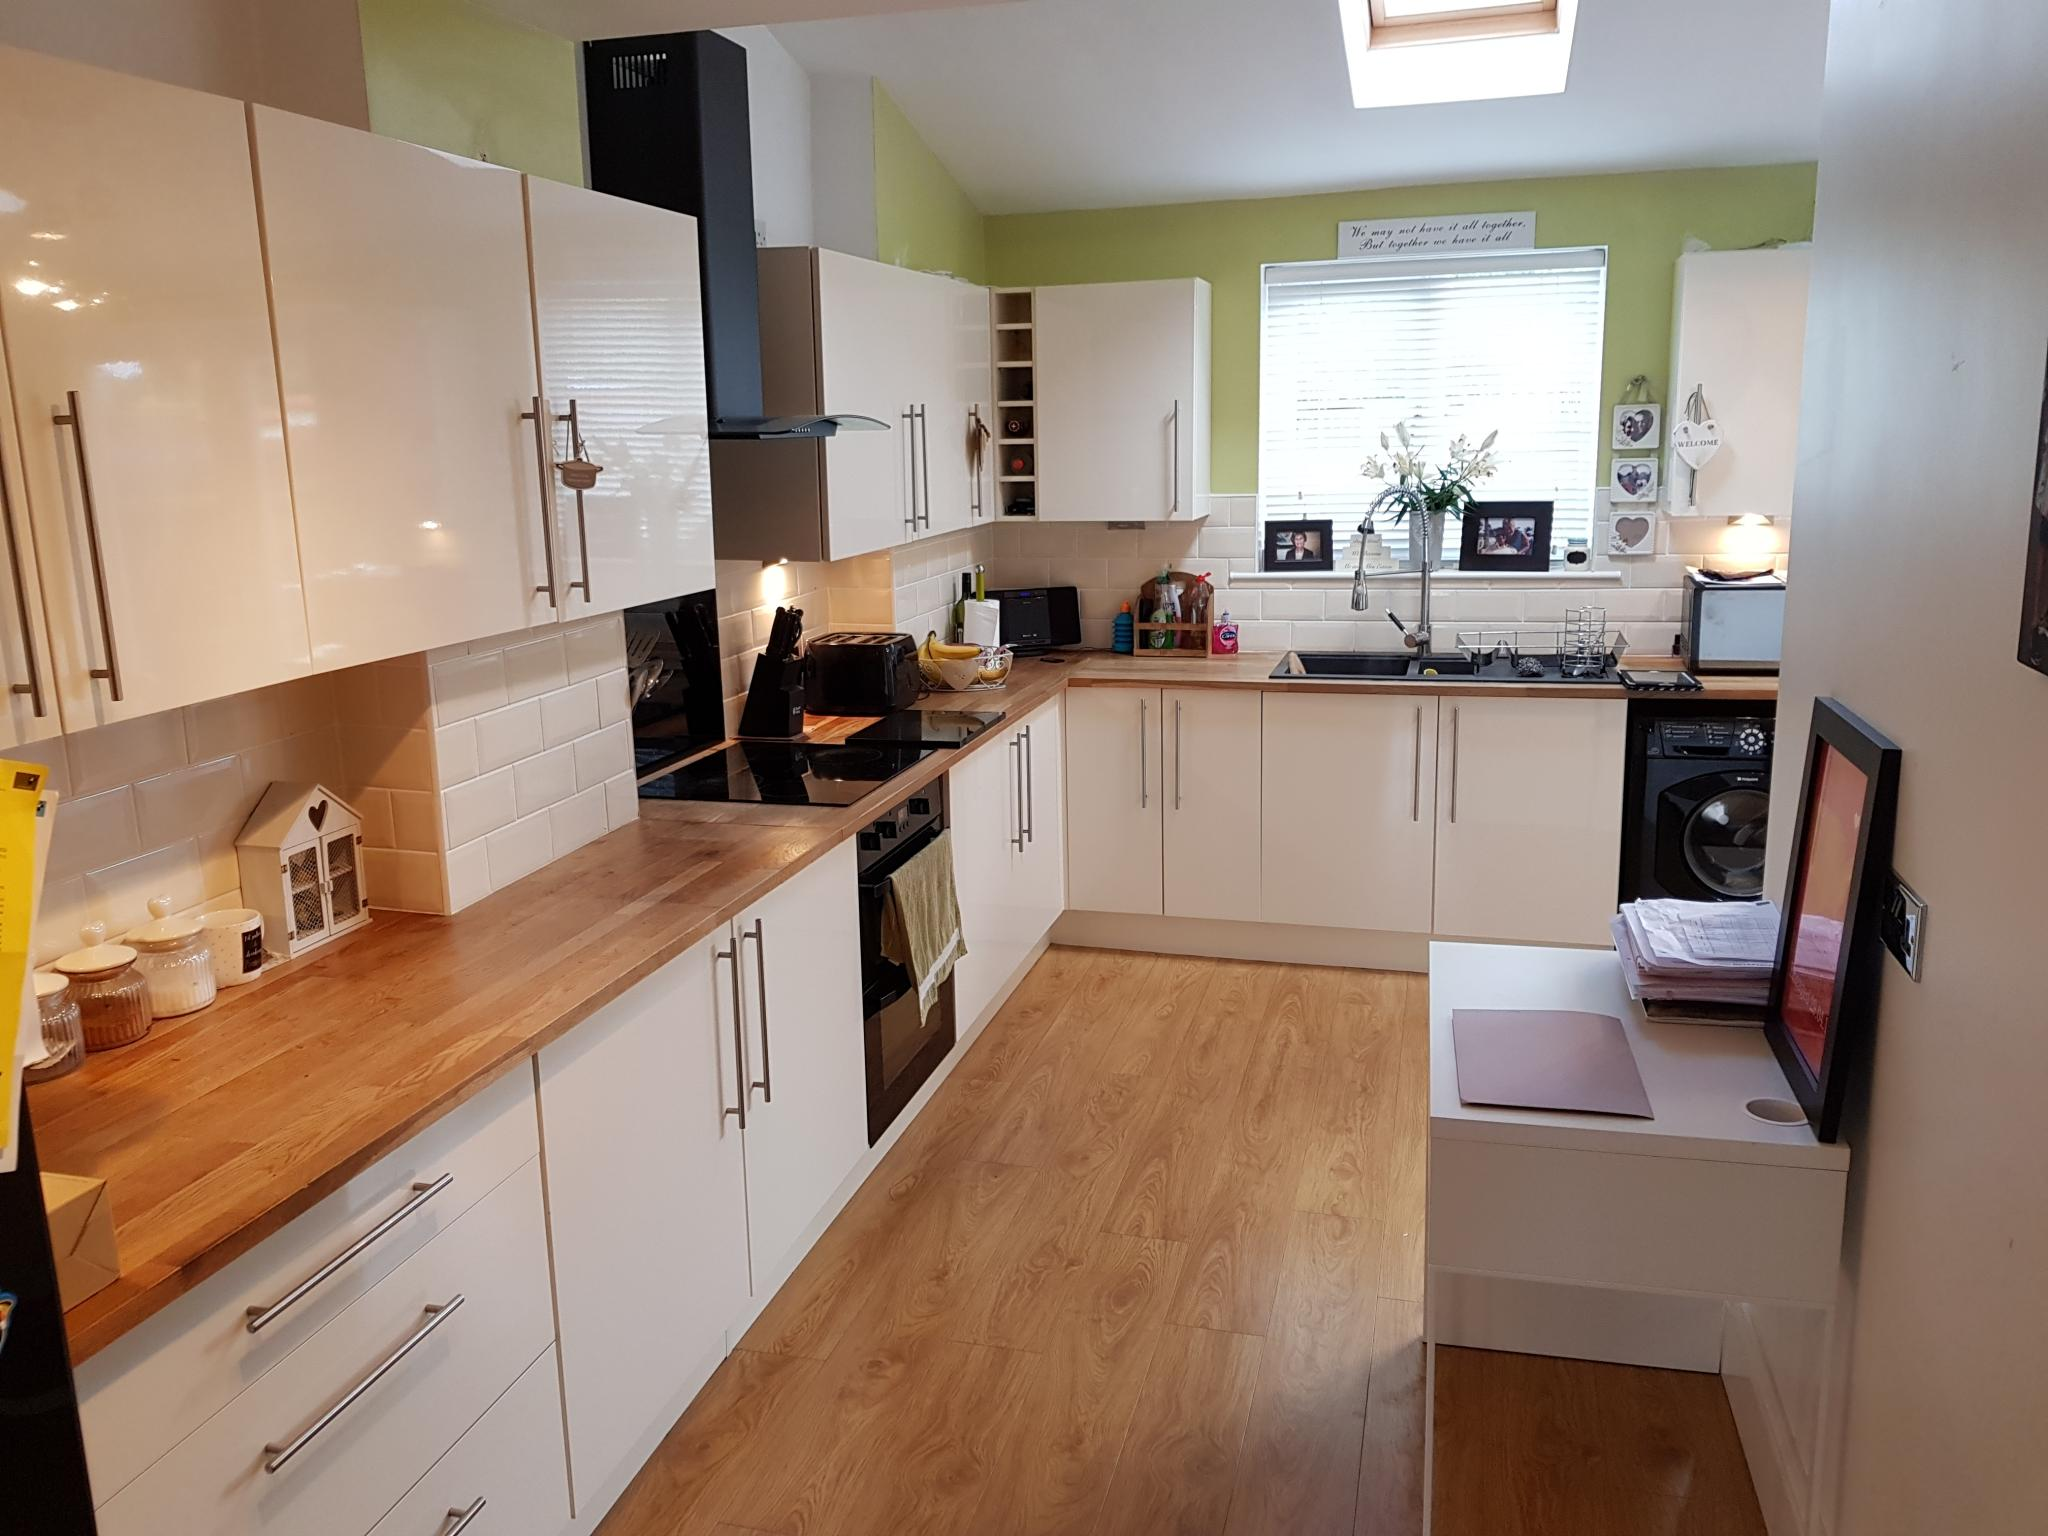 3 bedroom mid terraced house SSTC in Ipswich - 5